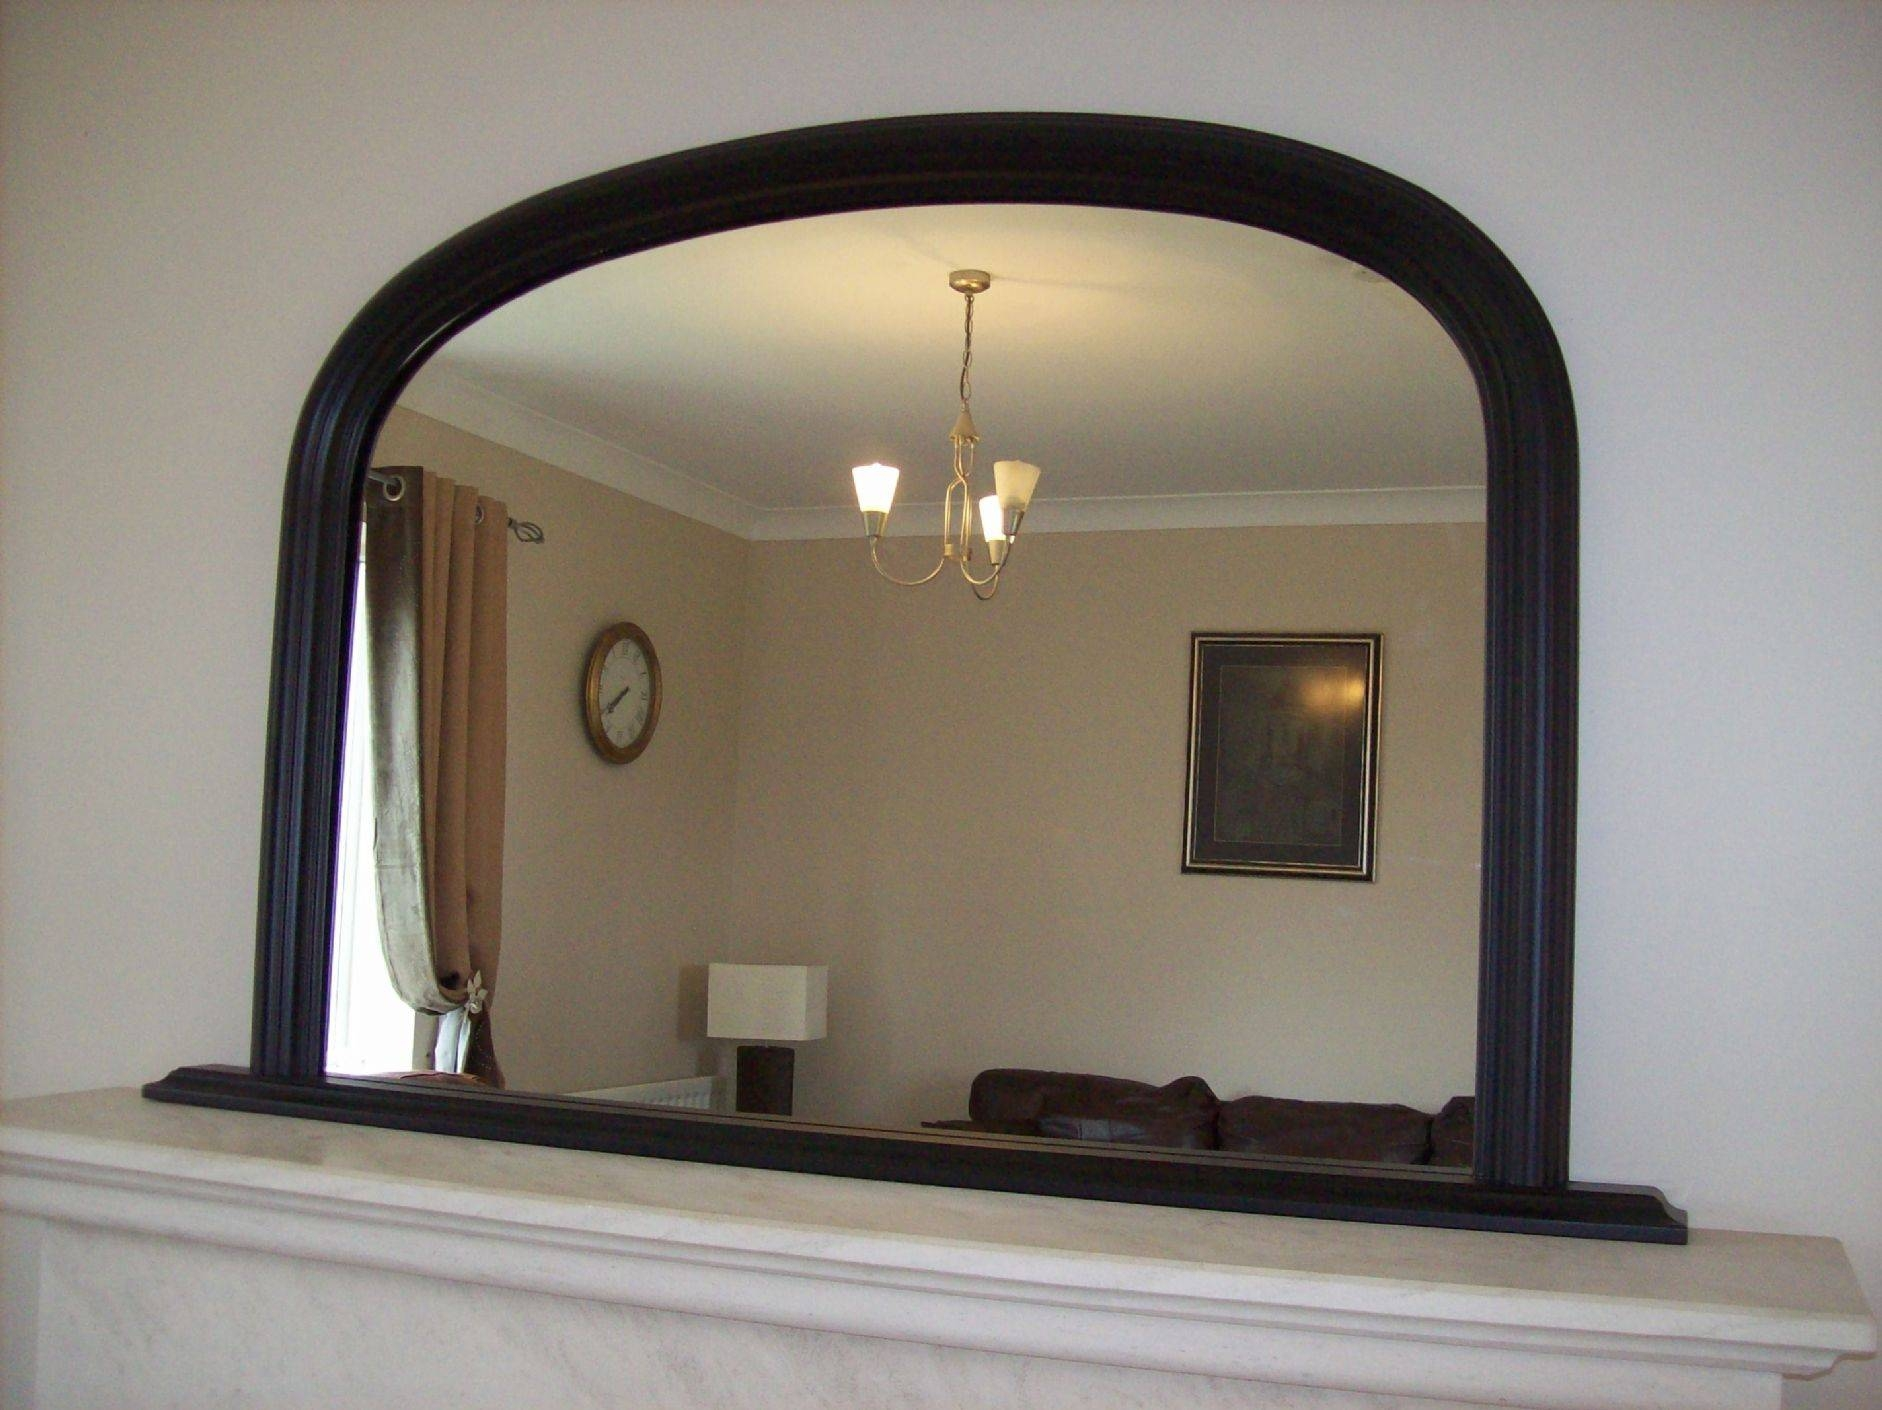 Arched Overmantle Mirror with Over Mantel Mirrors (Image 3 of 15)